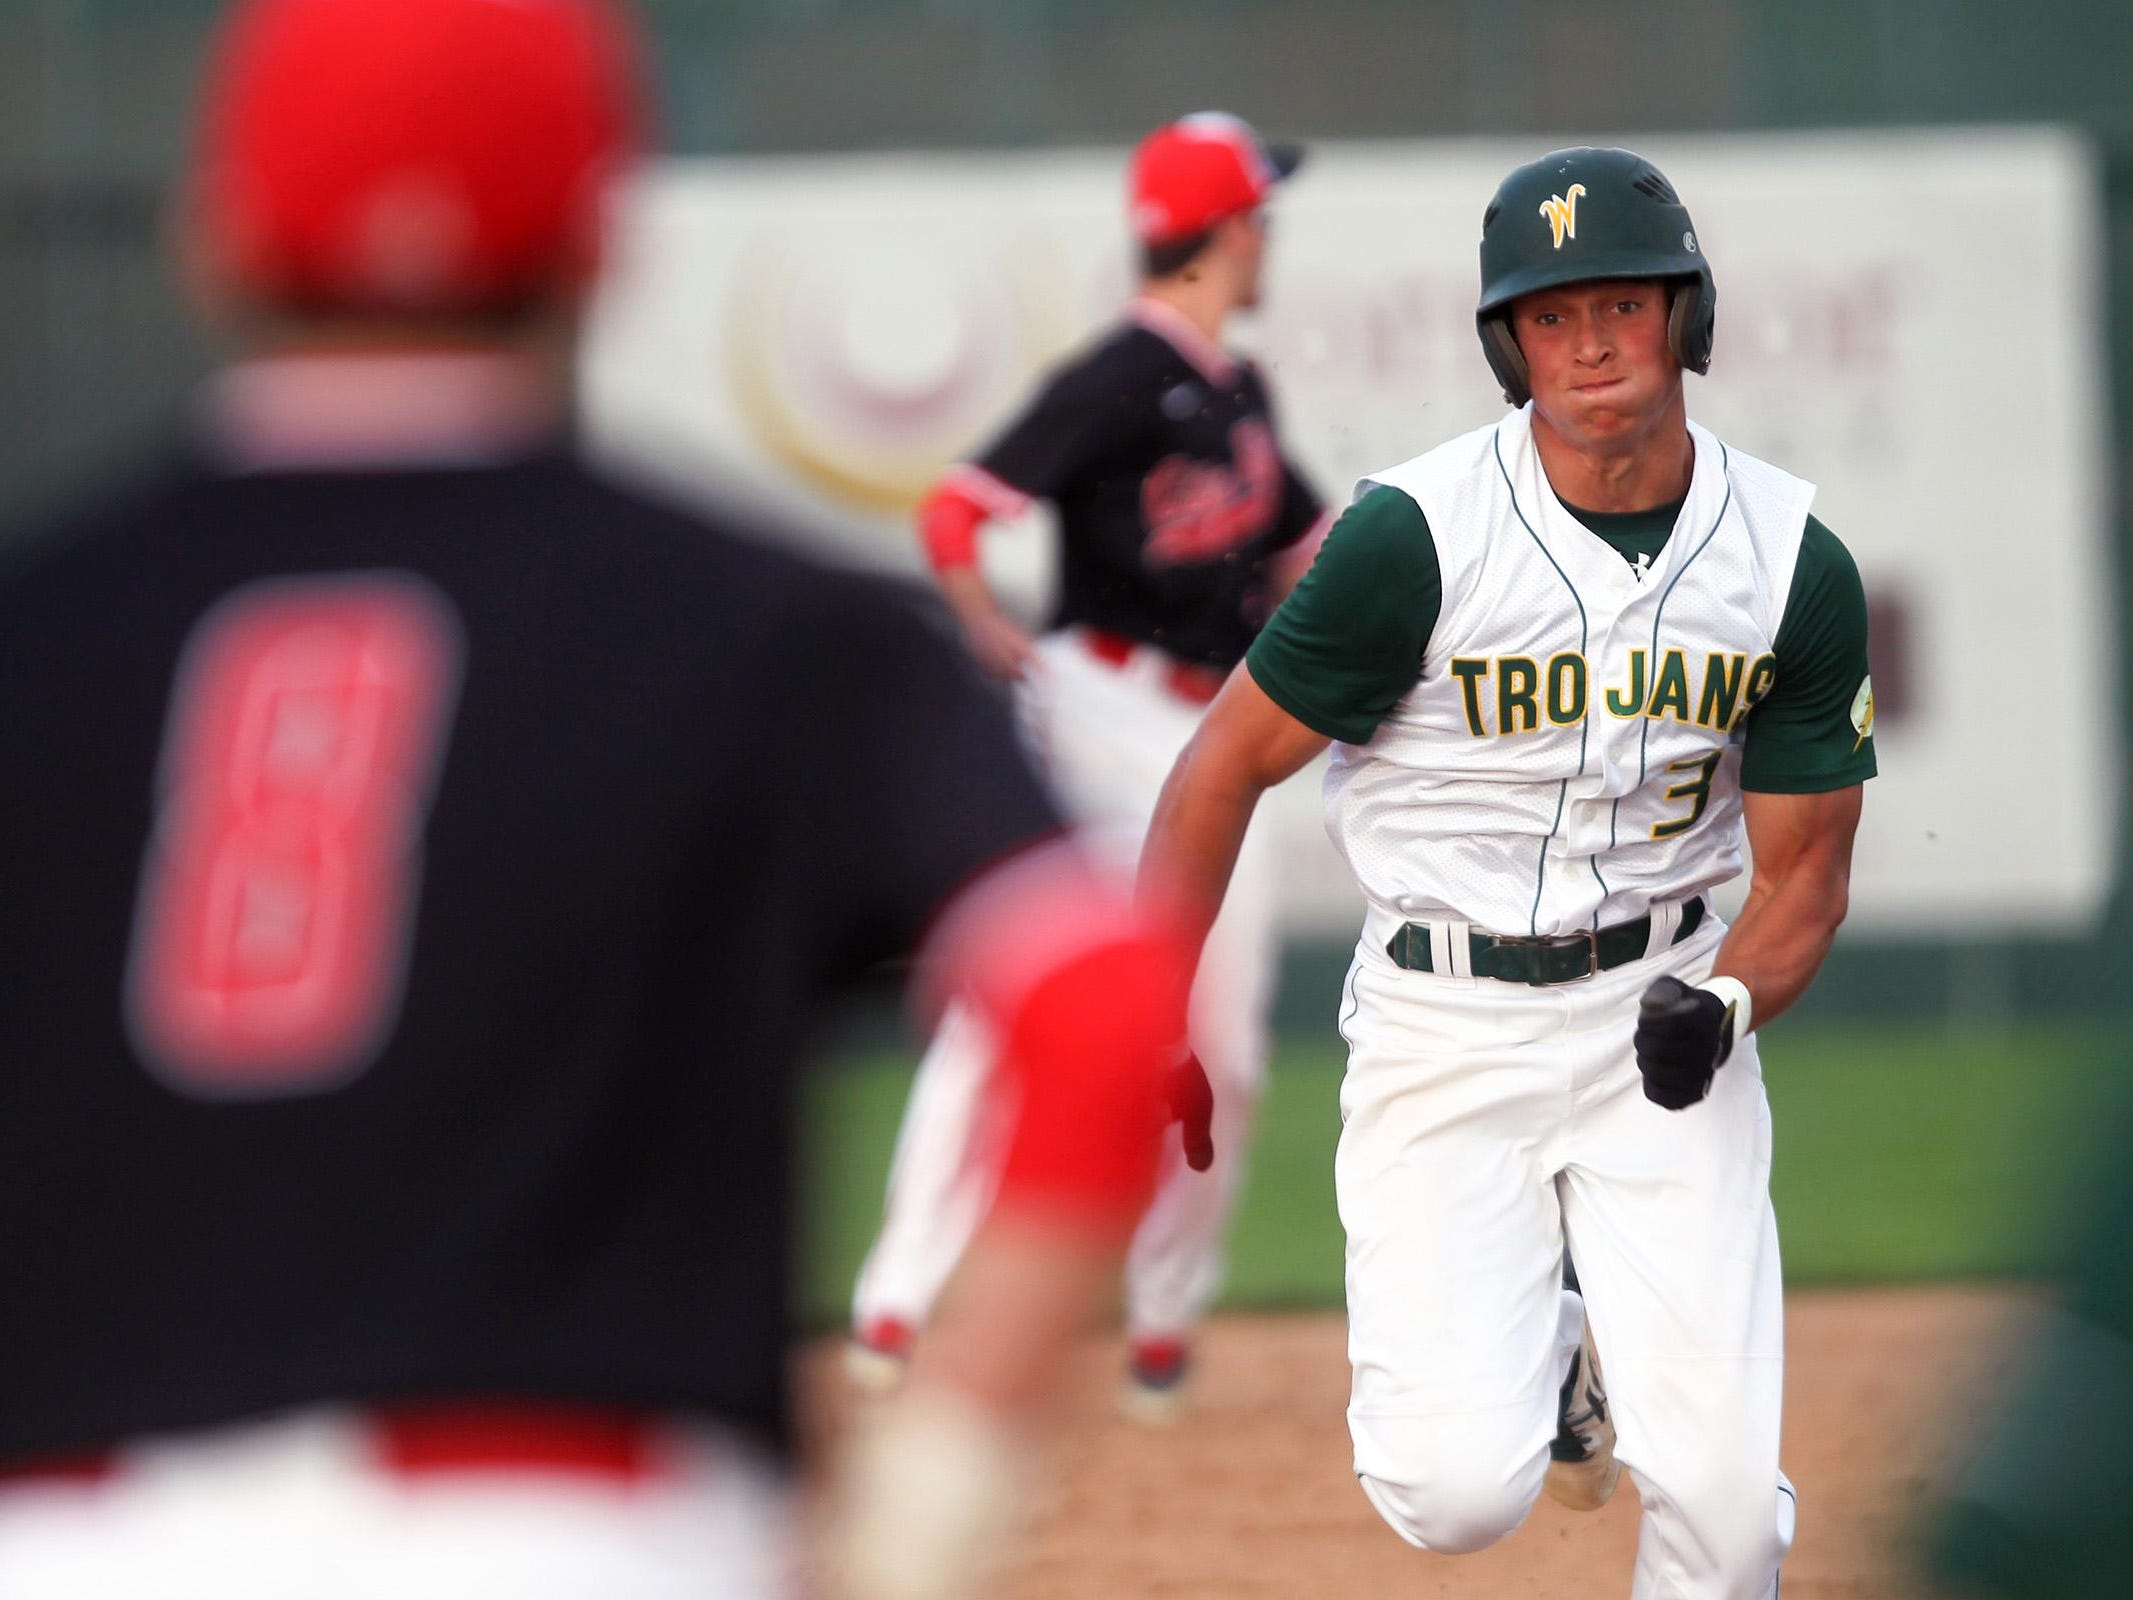 West High's Oliver Martin sprints to third base during the Trojans' home game against City High on Tuesday. West has won 11 out of 12 games after Tuesday's 2-1, walkoff vcitroy.